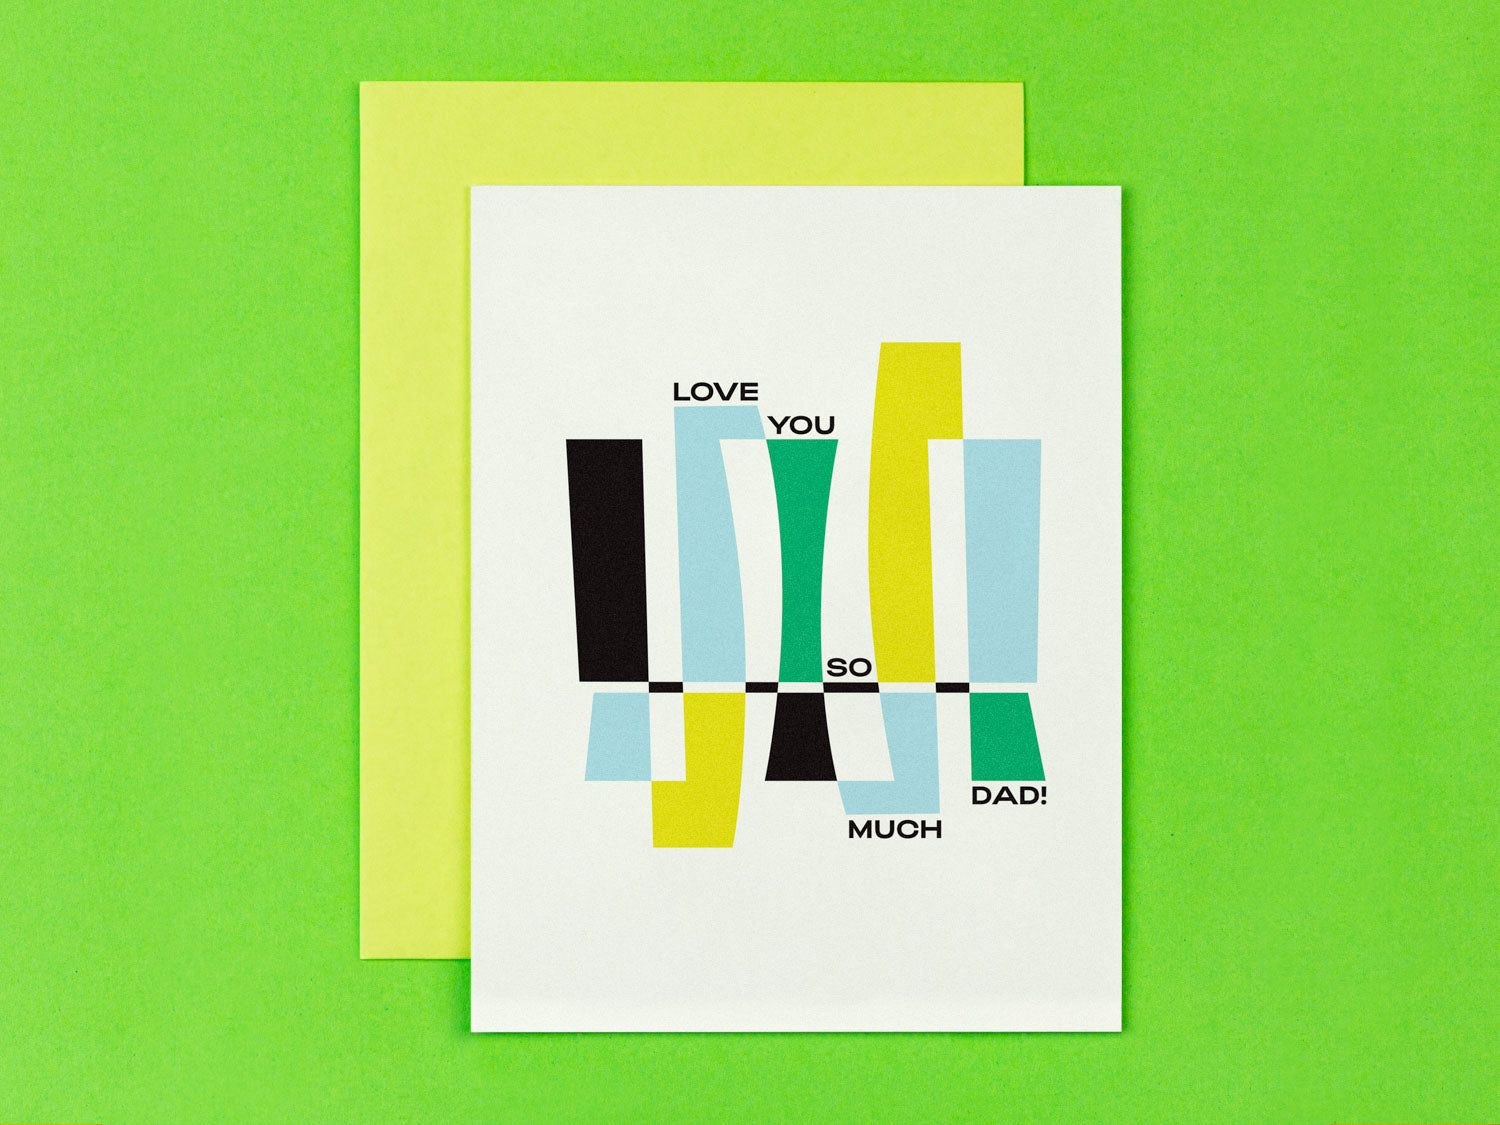 Love you so much dad! Father's Day card with abstract vaguely art deco inspired design. Made in USA by My Darlin' @mydarlin_bk